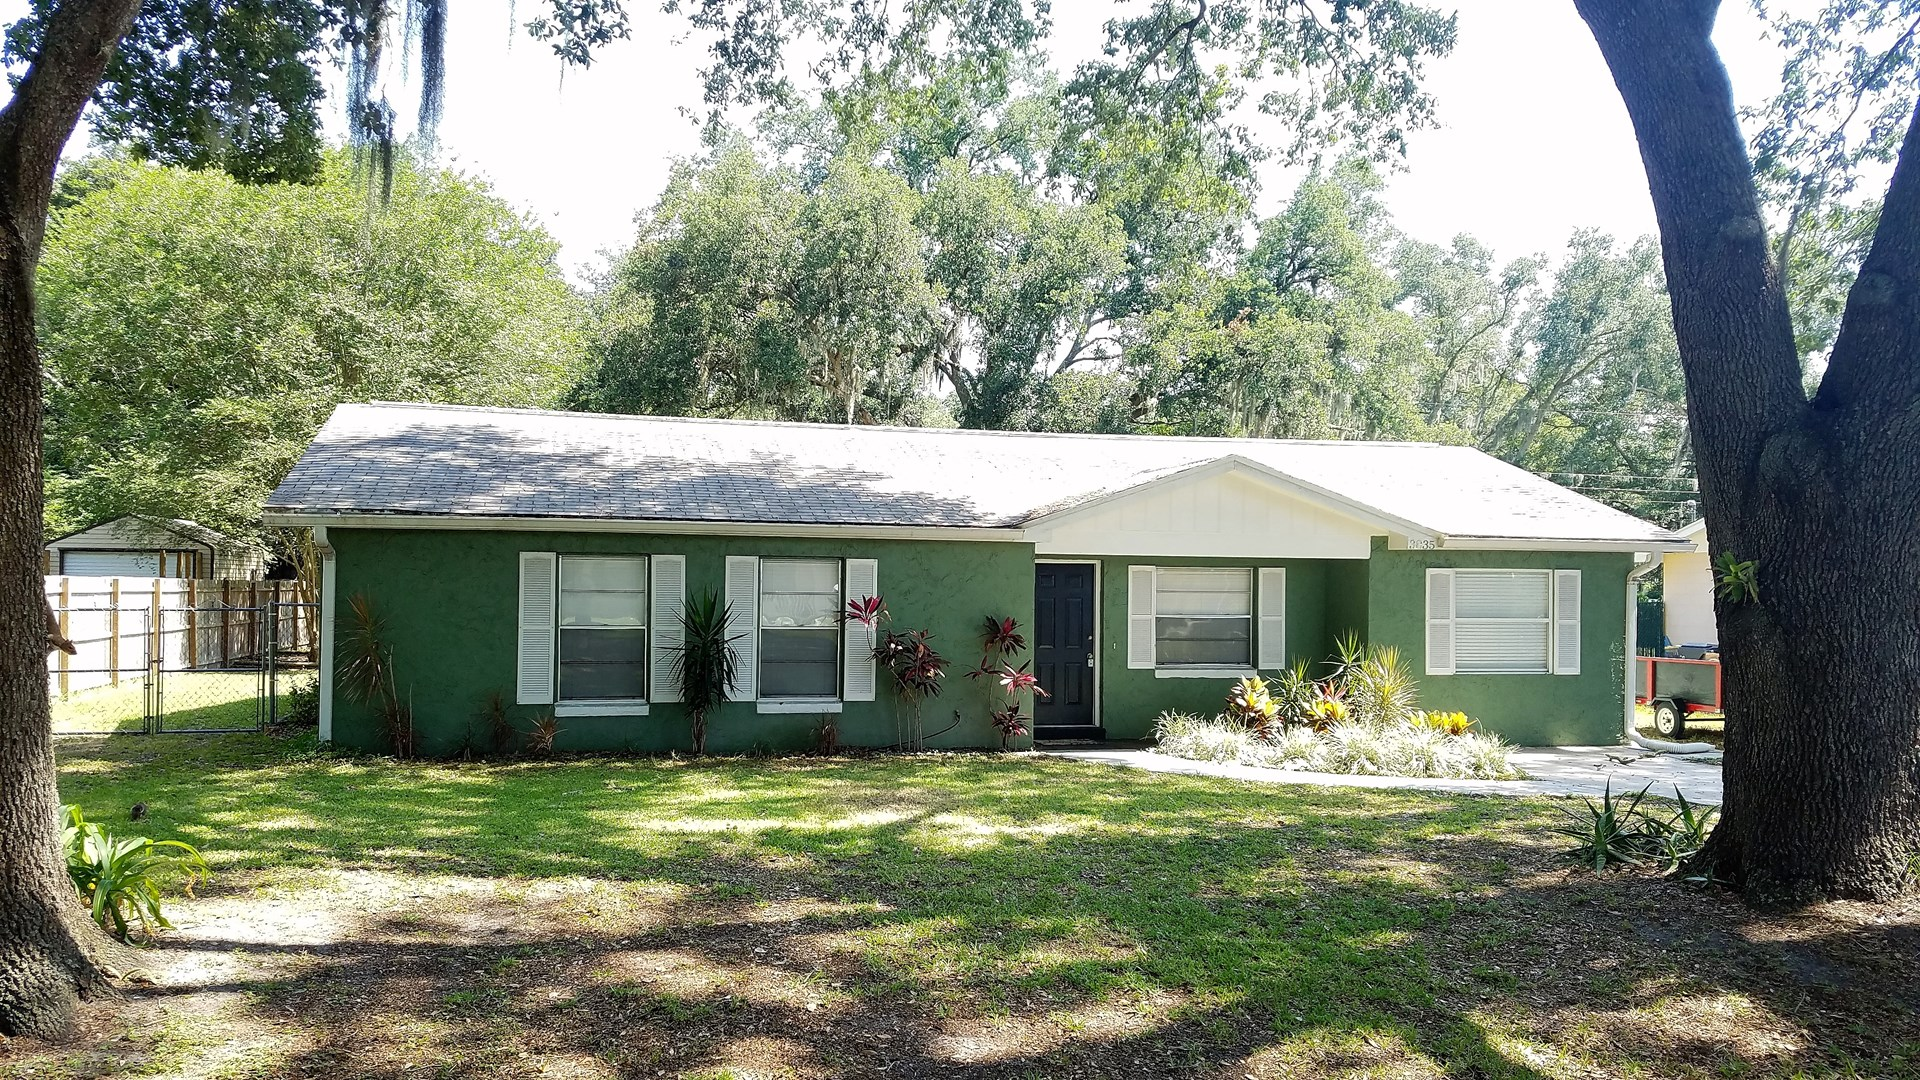 3/2 BLOCK HOME FOR SALE, LAKELAND FLORIDA, MOVE IN READY